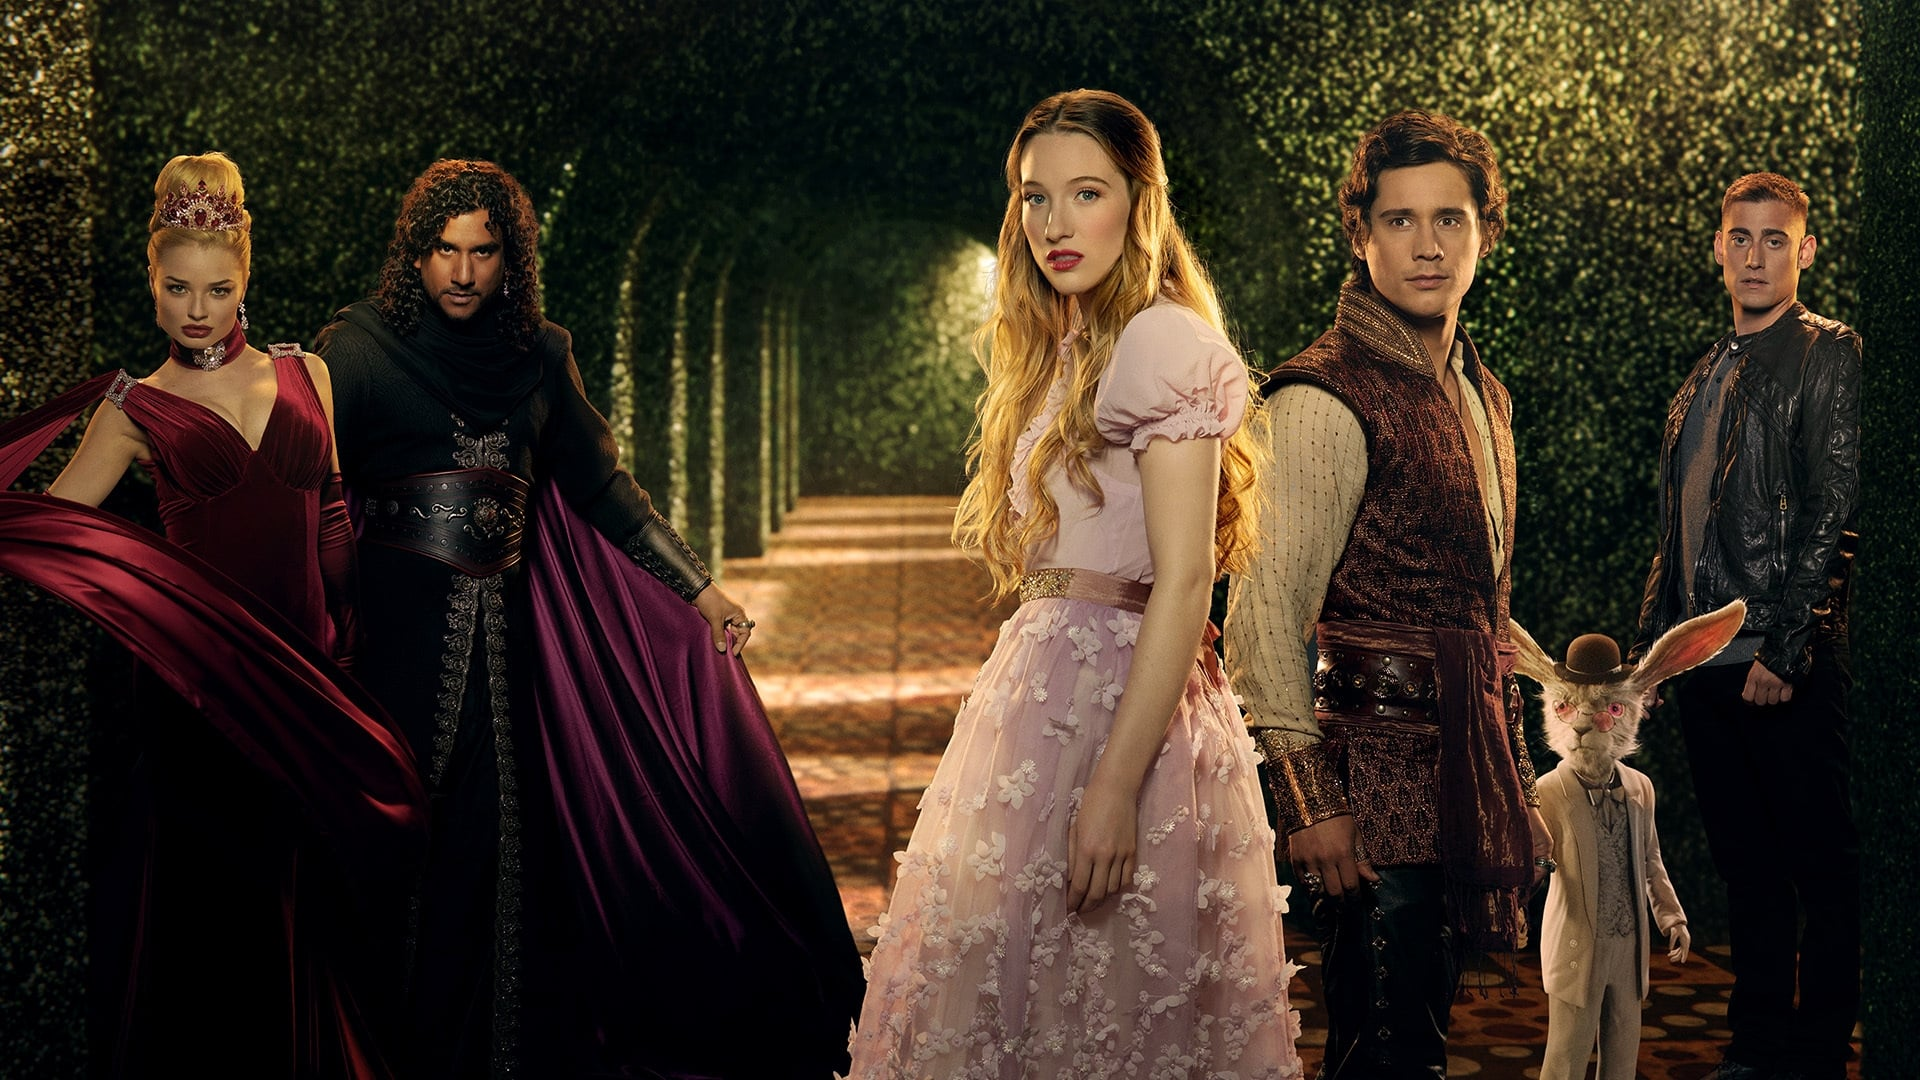 'Once Upon a Time in Wonderland' canceled